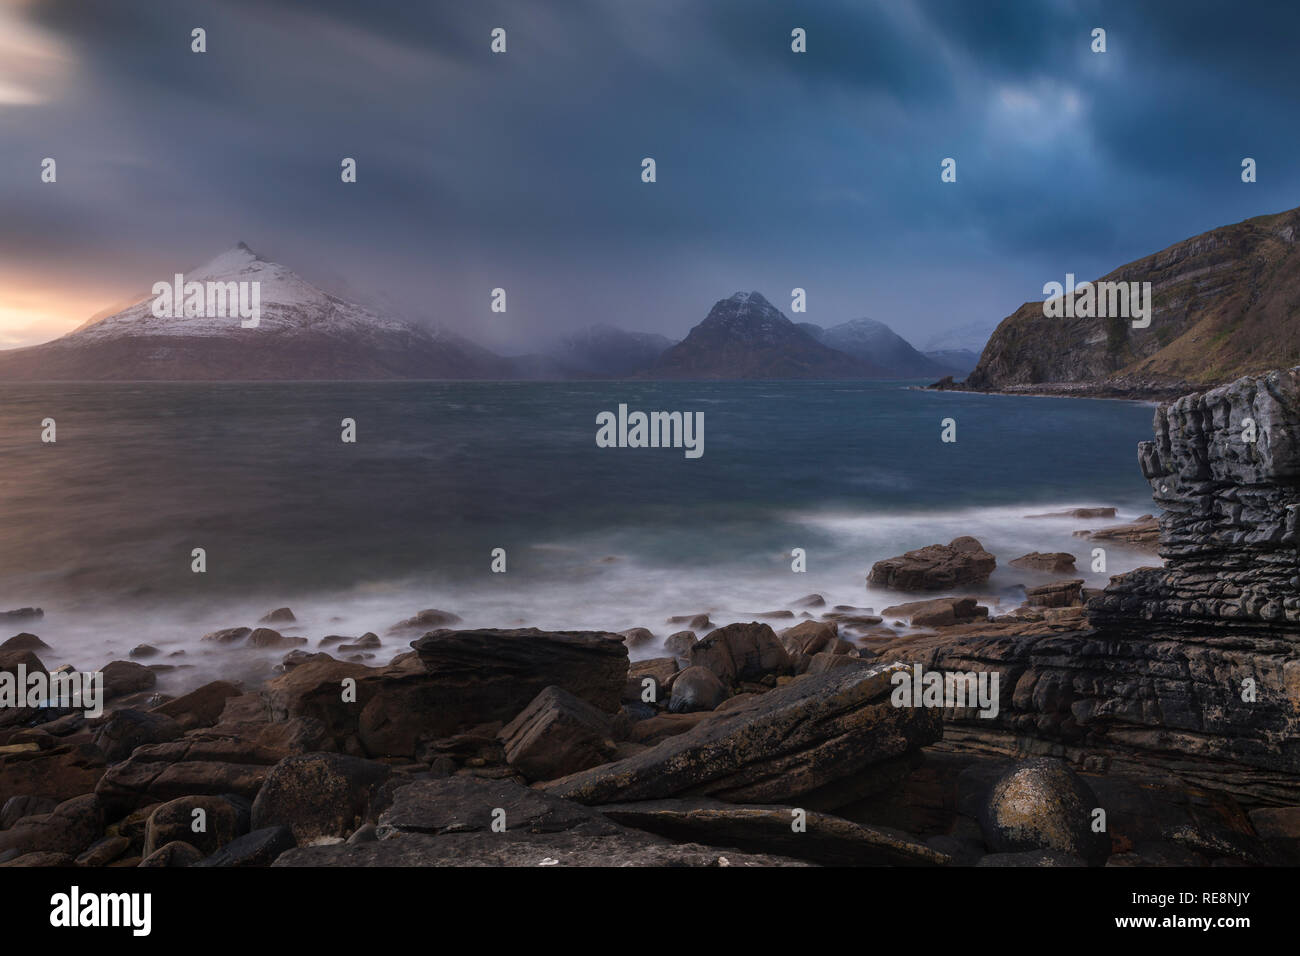 The Cuillin Hills and squally weather during an evening at Elgol, Isle of Skye, Scotland - Stock Image